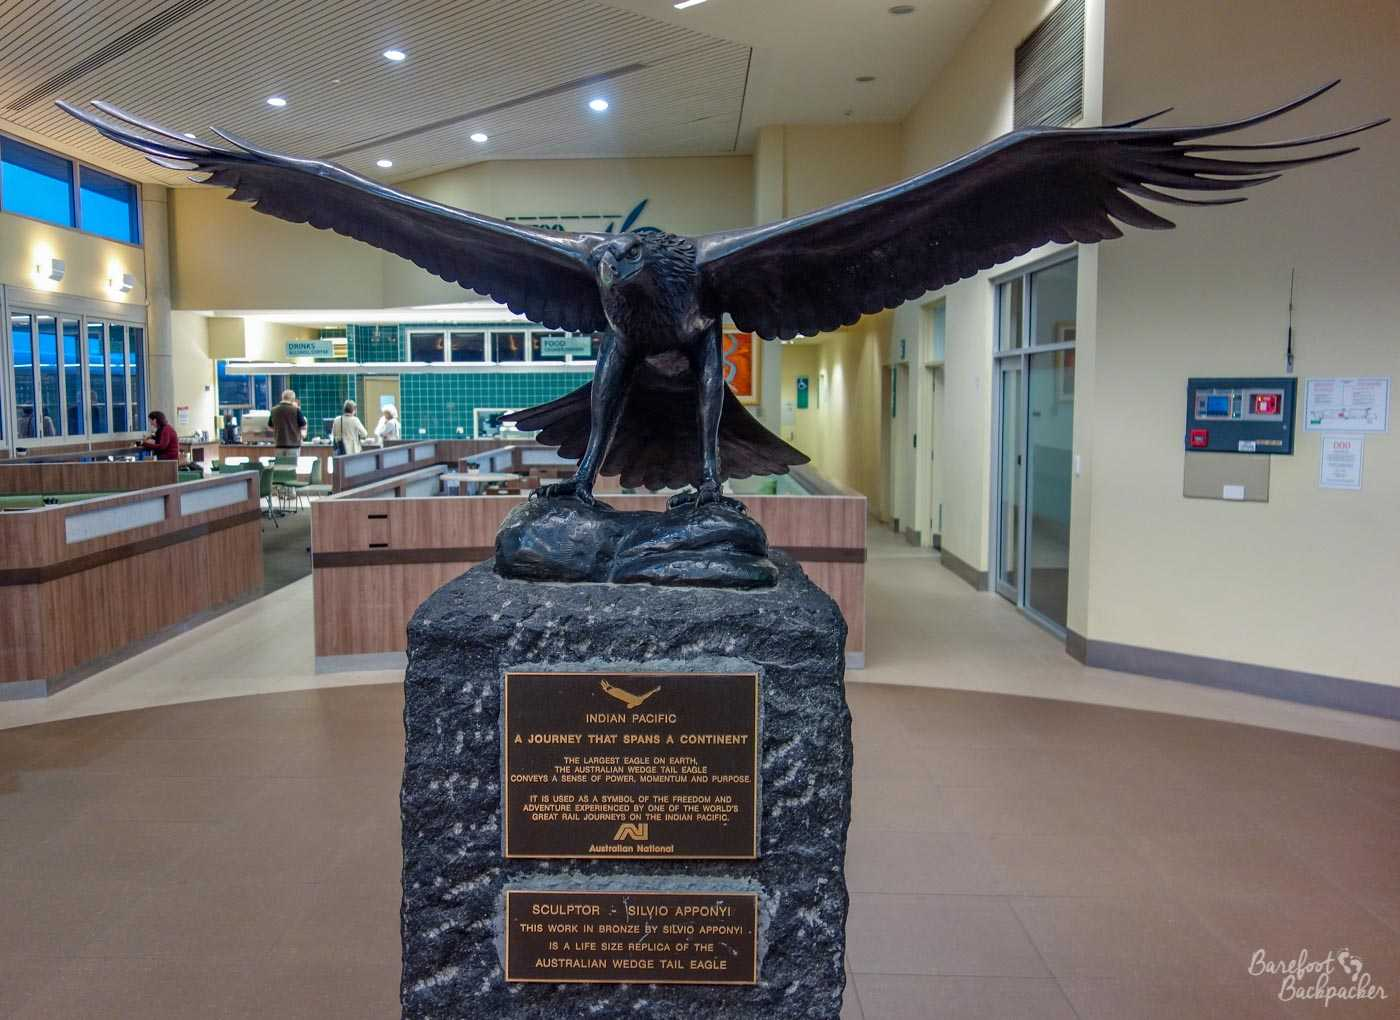 Sculpture of an eagle, by Silvio Apponyi, in Adelaide Parklands Railway Station. It's an Australian Wedge Tail Eagle (life-size), conveying a sense of power, momentum, and purpose, according to the info plaque just below it, and symbolising the freedom and adventure of the Indian Pacific rail journey. Whatever.